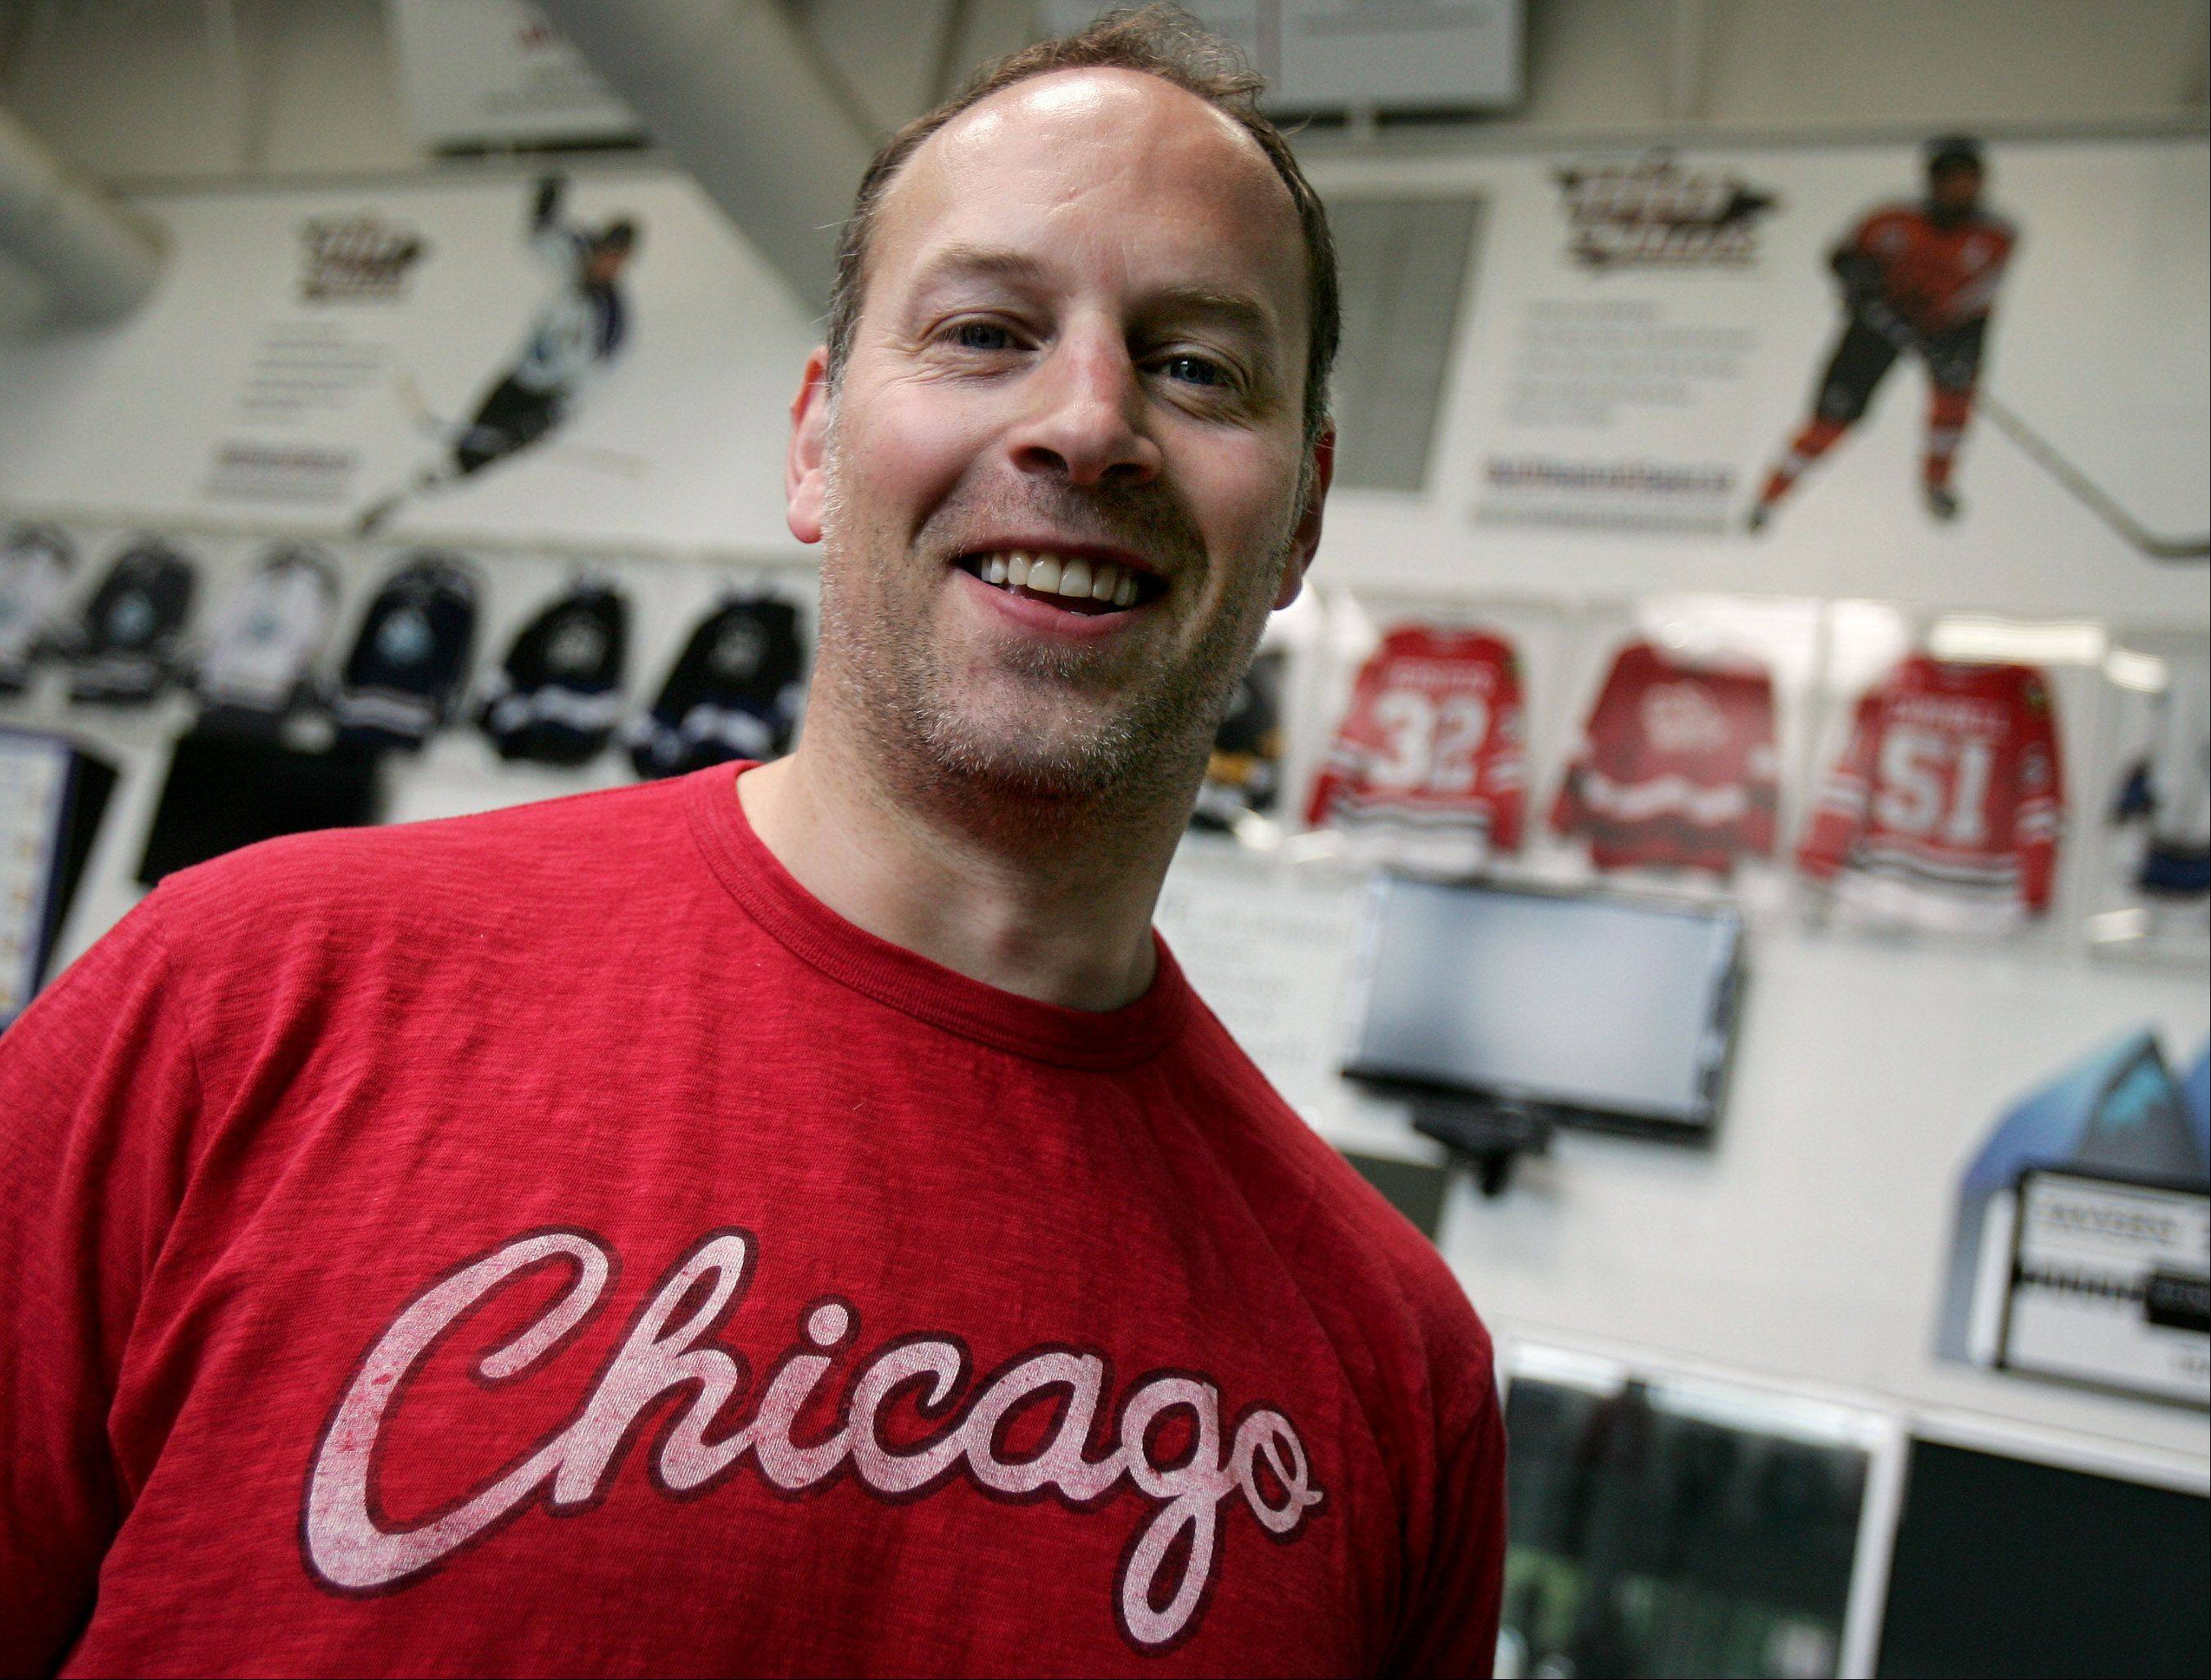 Steve Dubinsky, a former Chicago Blackhawks player for five years, will be an instructor at a summer hockey camp at Glacier Ice Arena in Vernon Hills. He'll be joined by retired Hawks Eddie Olczyk, Steve Konroyd and Steve Smith.